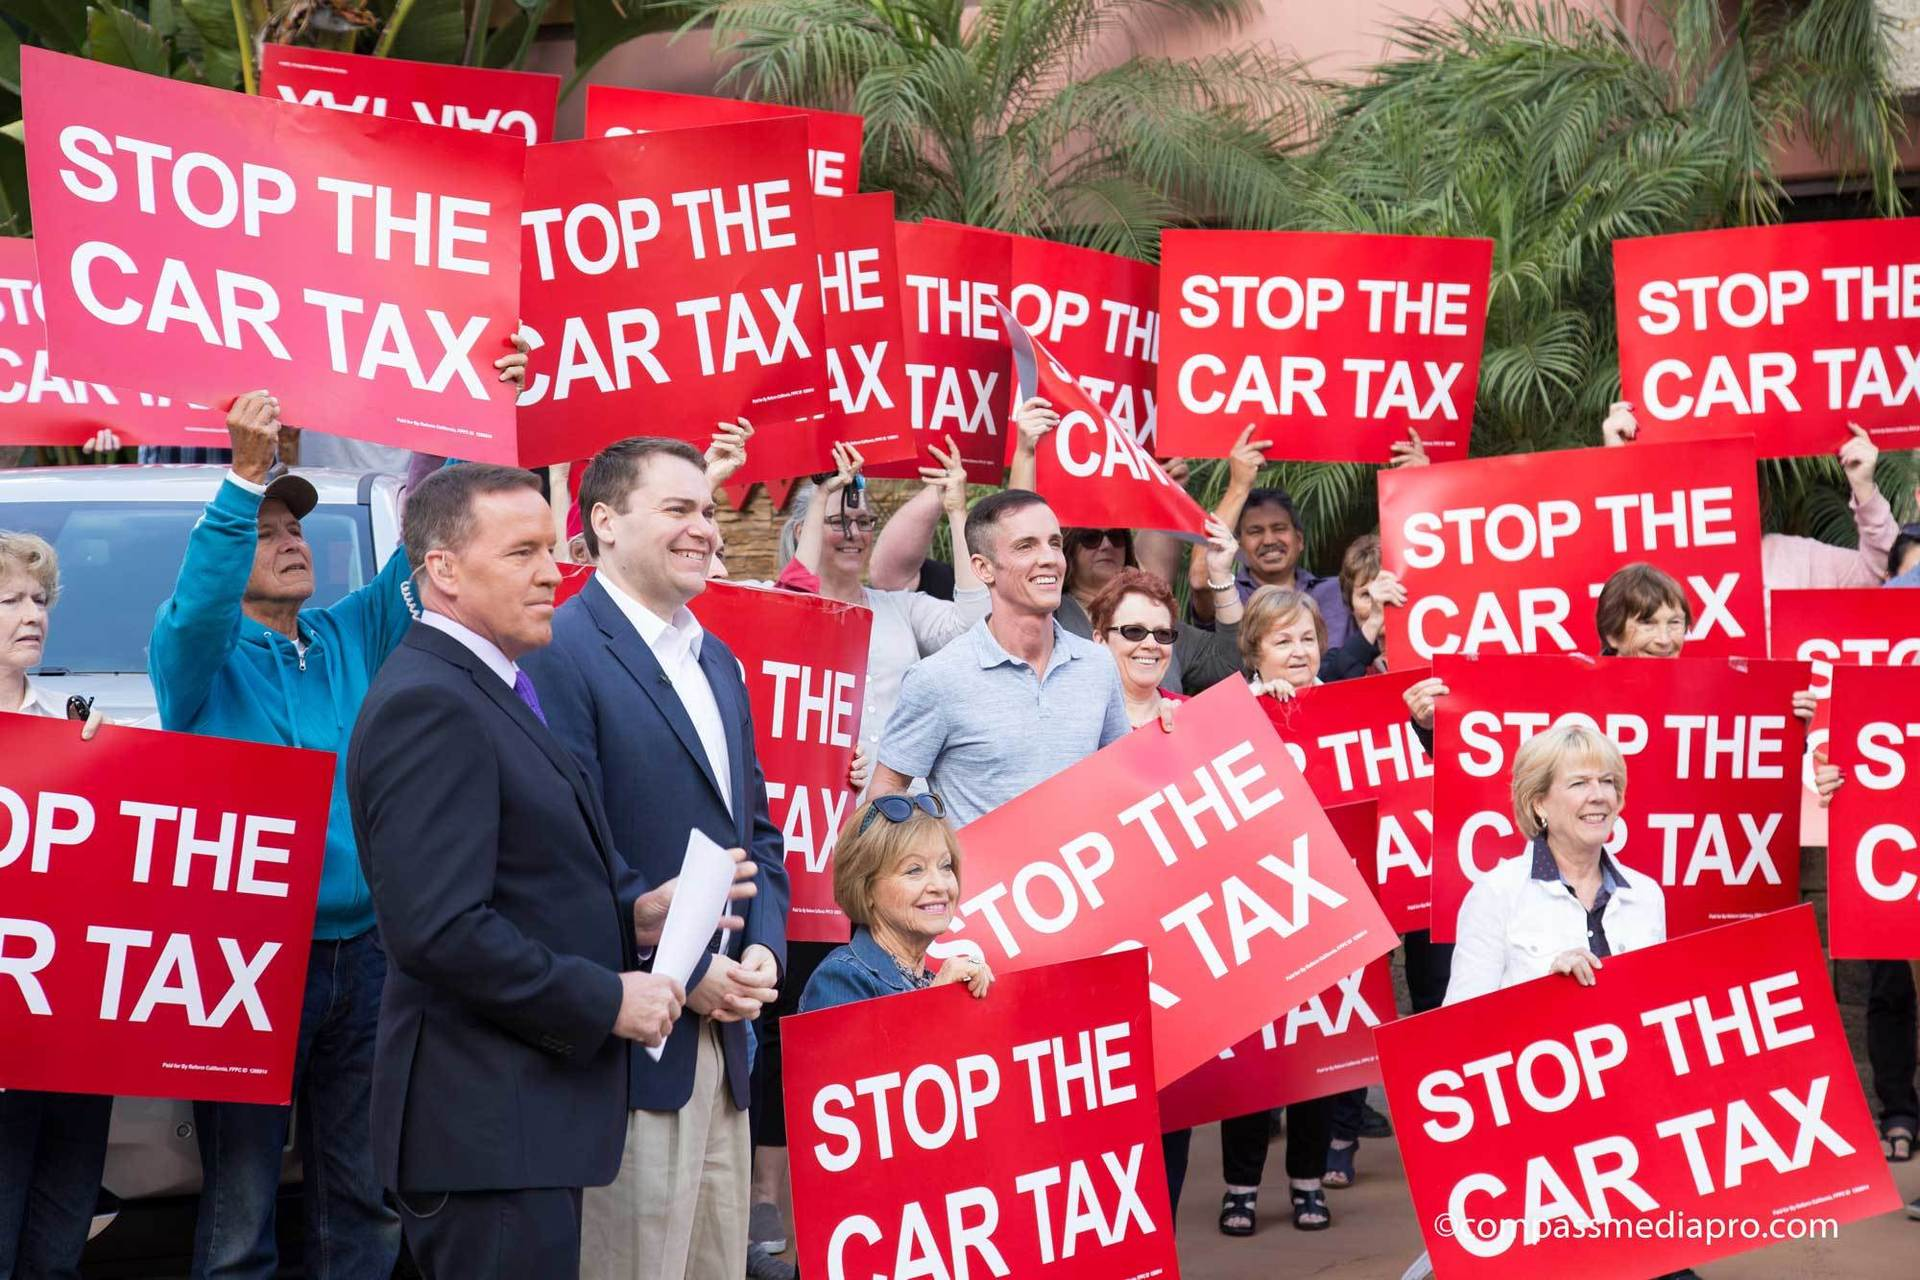 Carl stop car tax r